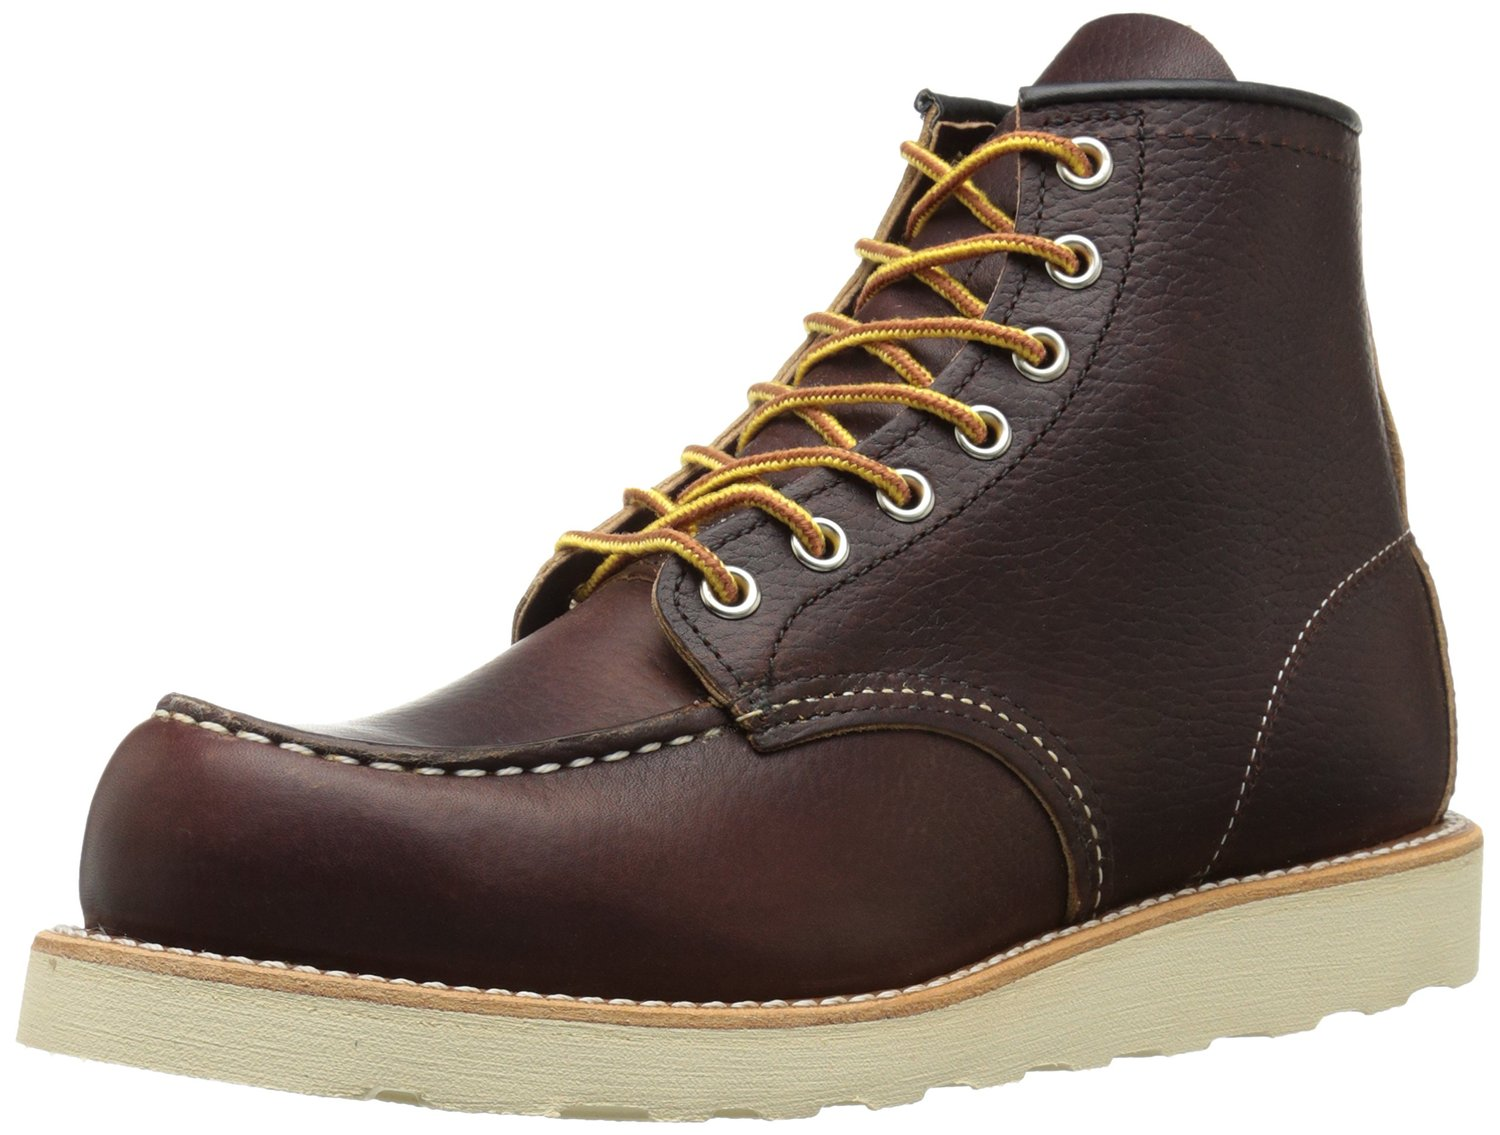 Red Wing Winter Boots gHPp3waL